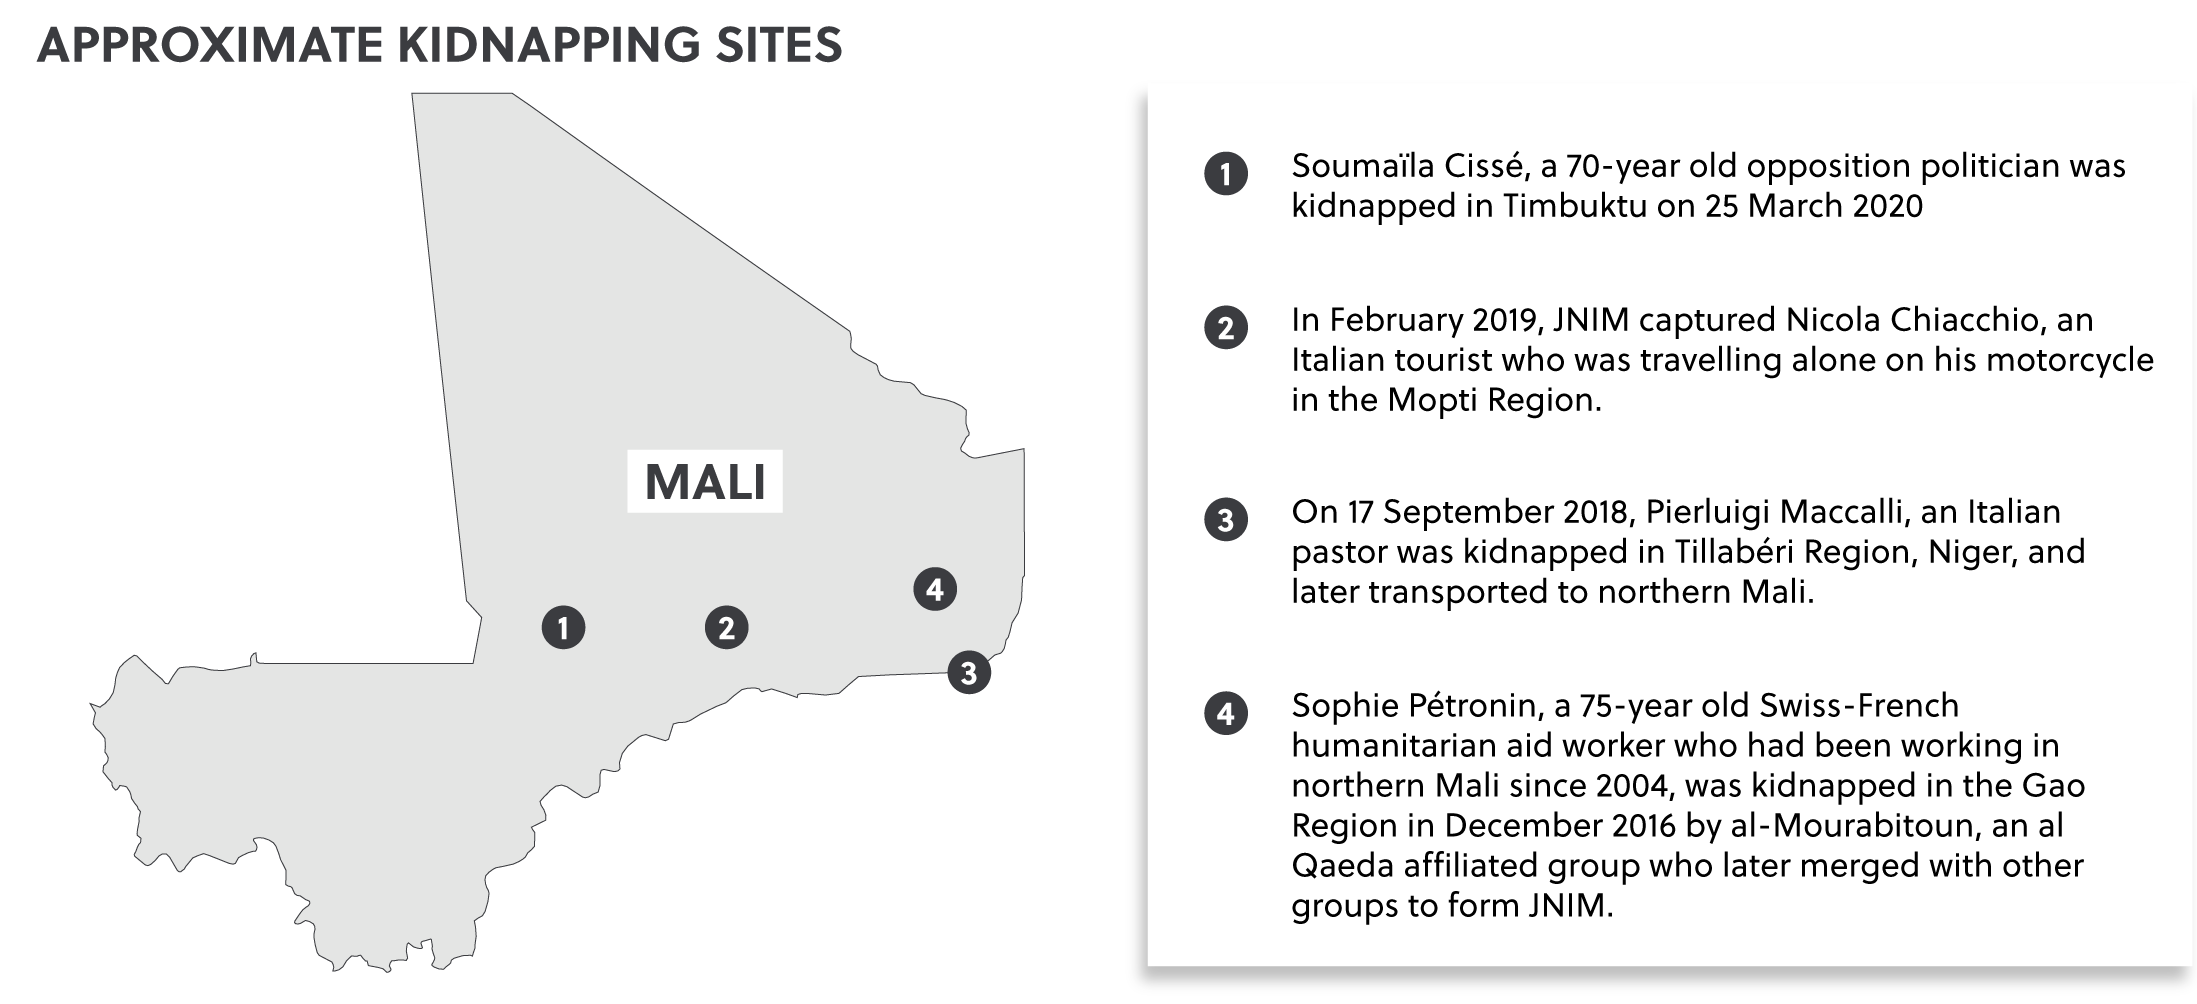 Mali Kidnappings